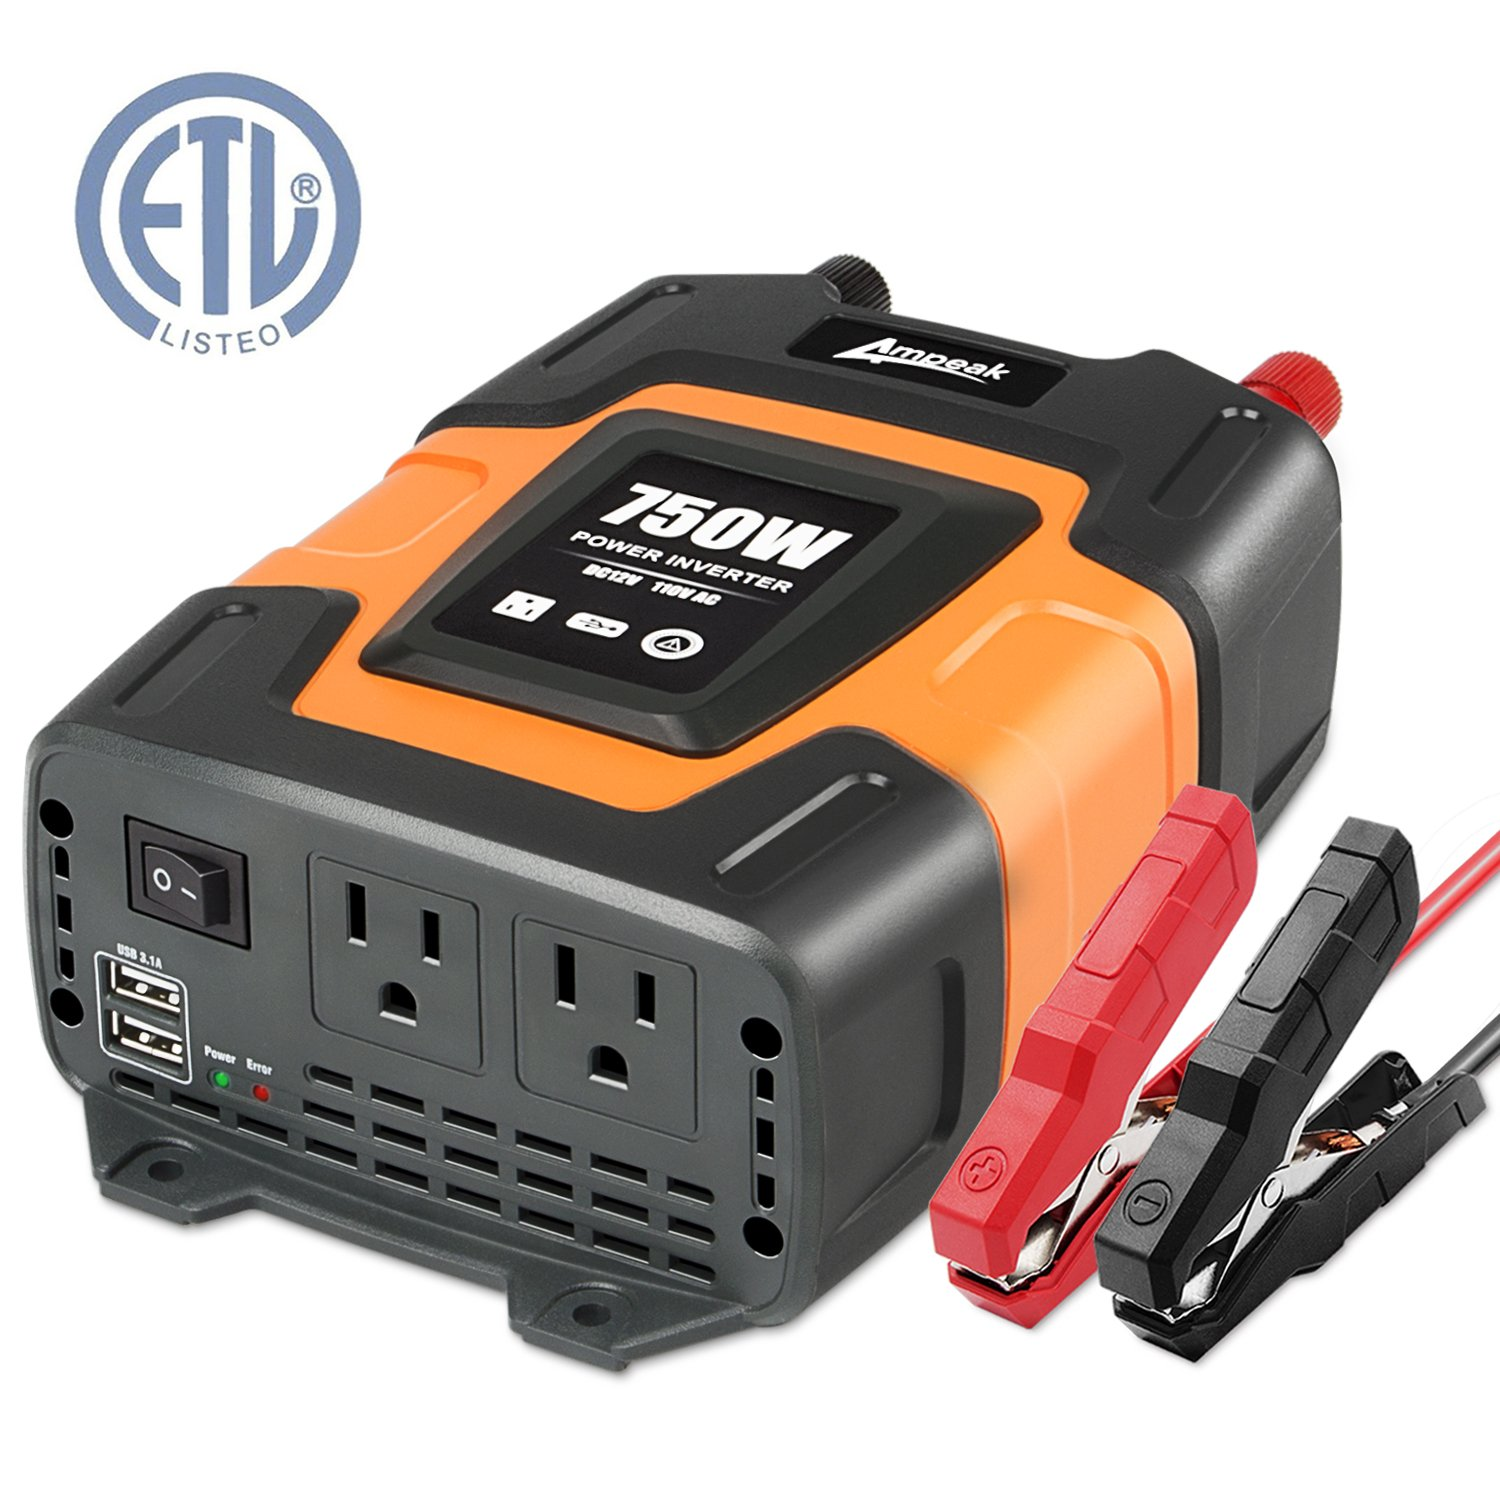 Ampeak 750W Power Inverter DC 12V to 110V AC Converter with 3.1A Dual USB Inverter